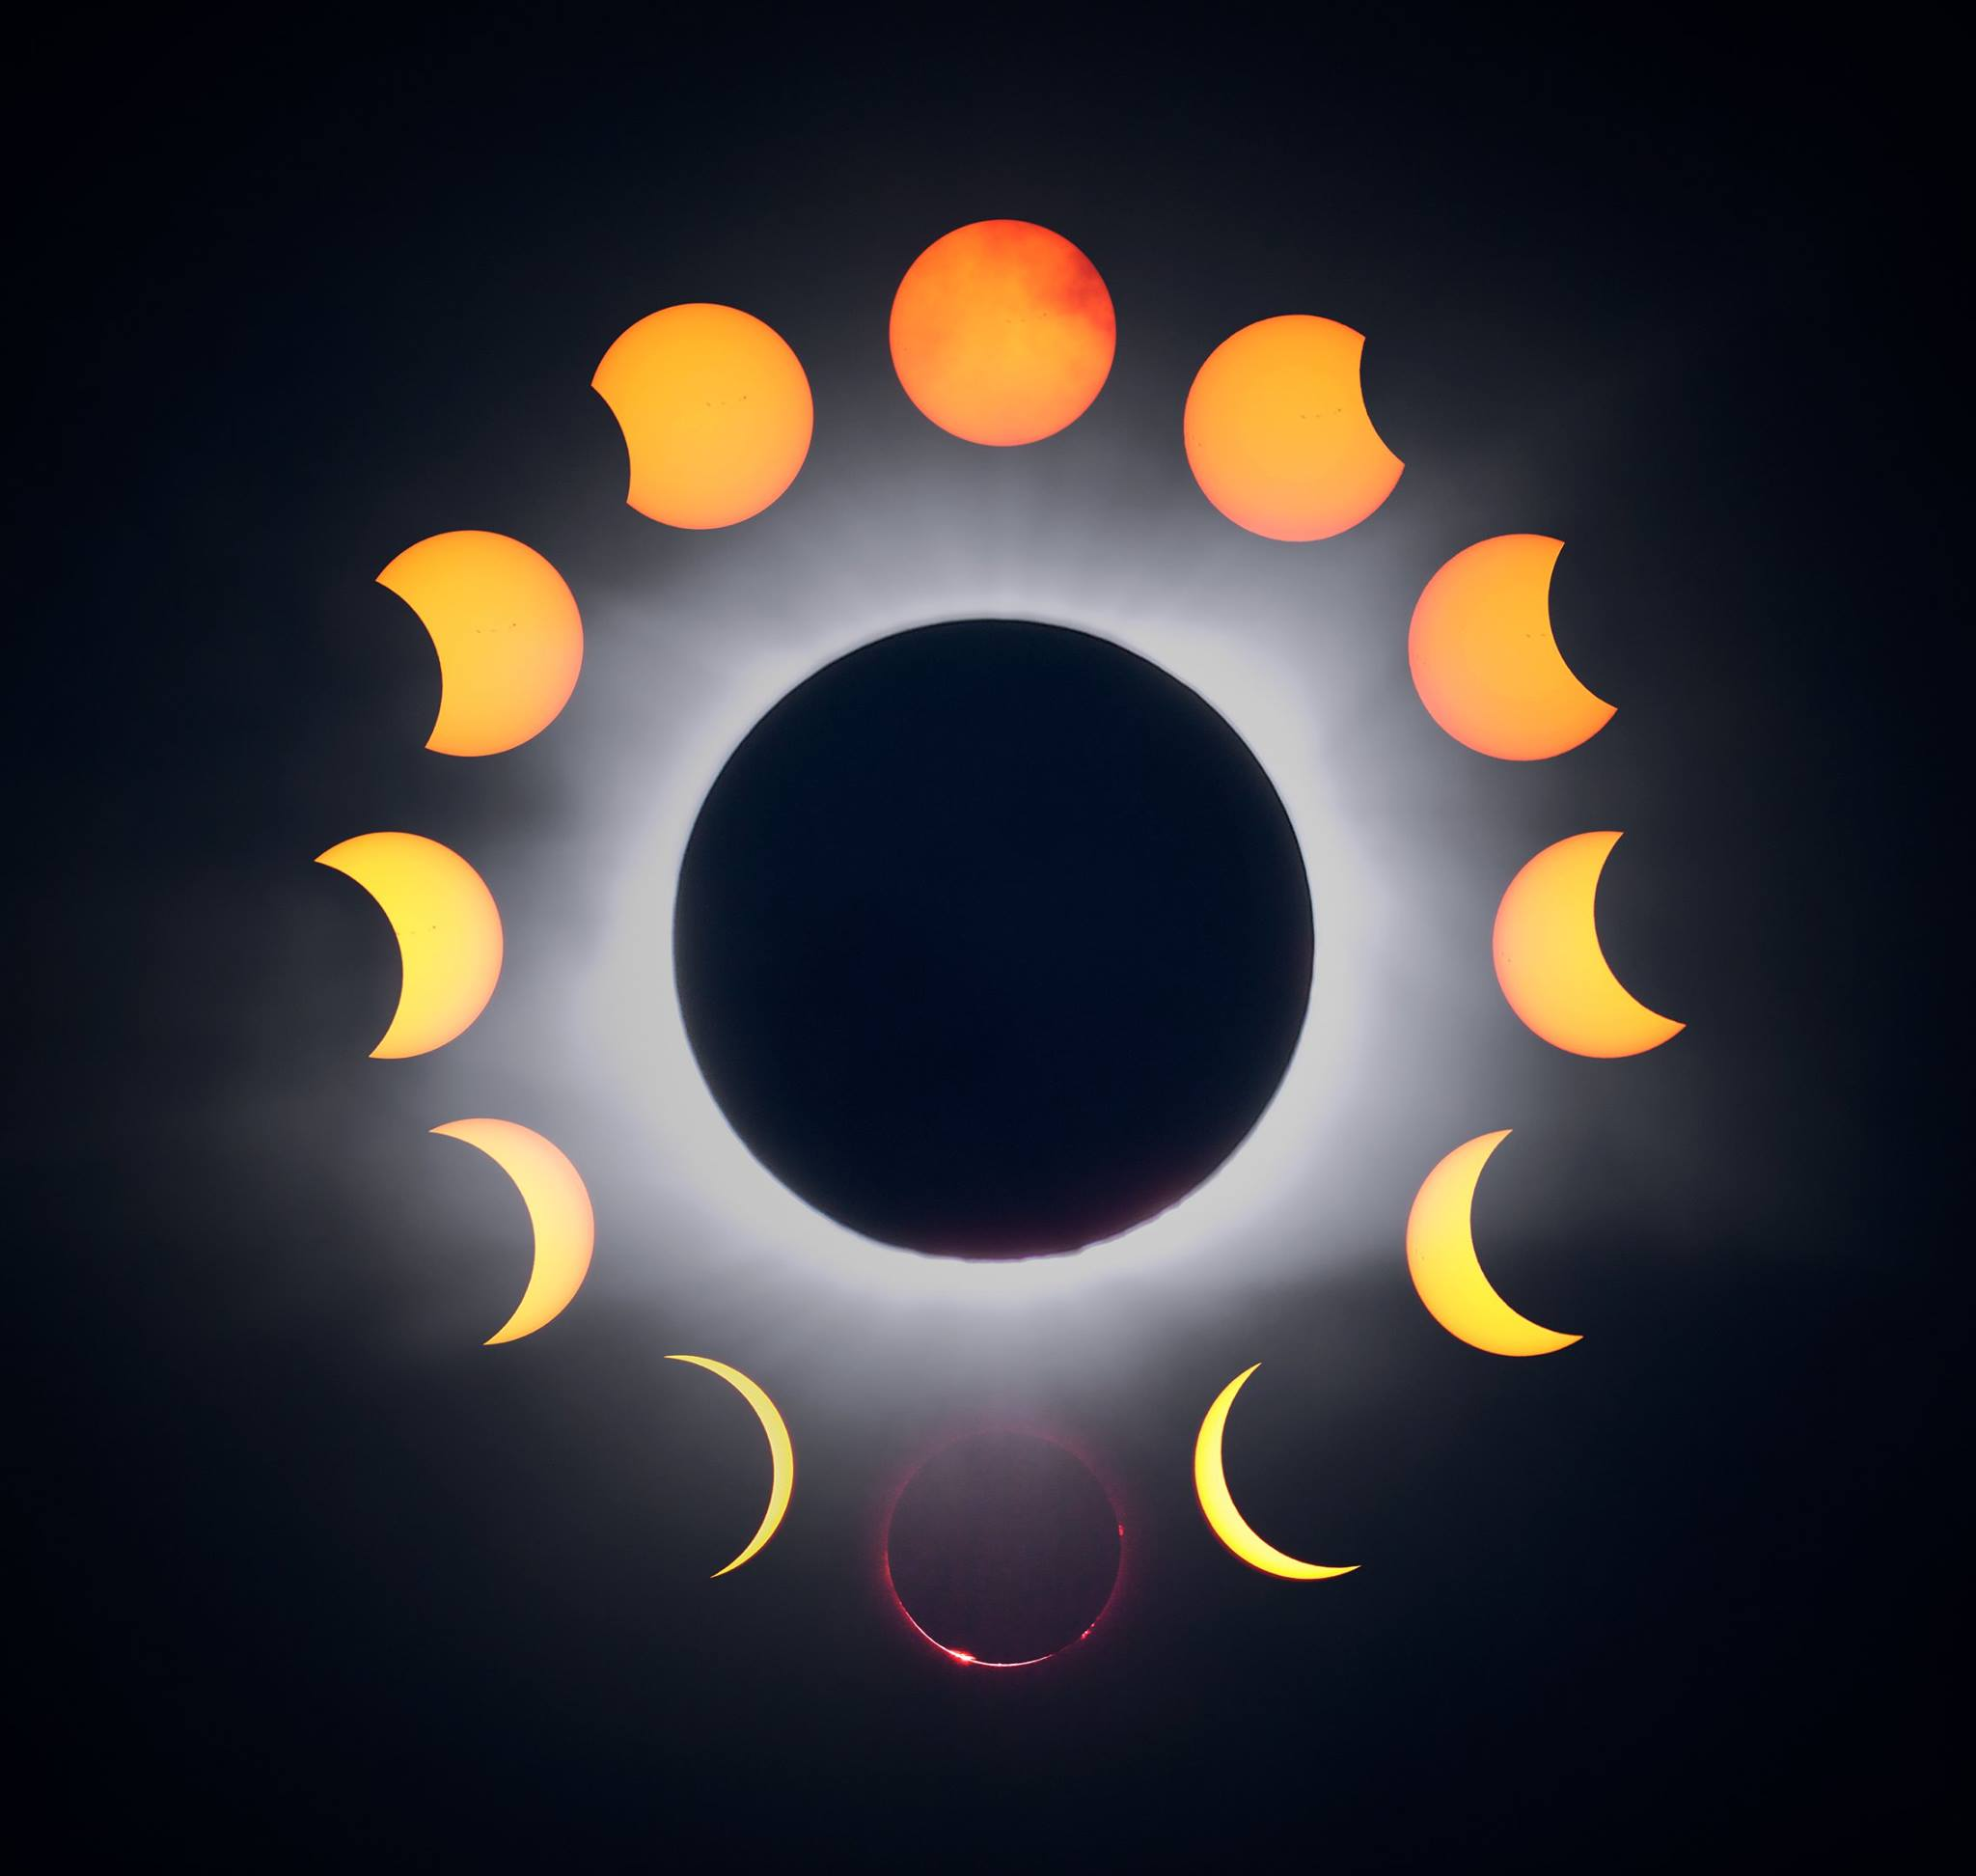 Collage showing phases of the eclipse, clockwise from the top. Moment of totality and coronal highlights shown in the center. © 2017 Christopher Couch